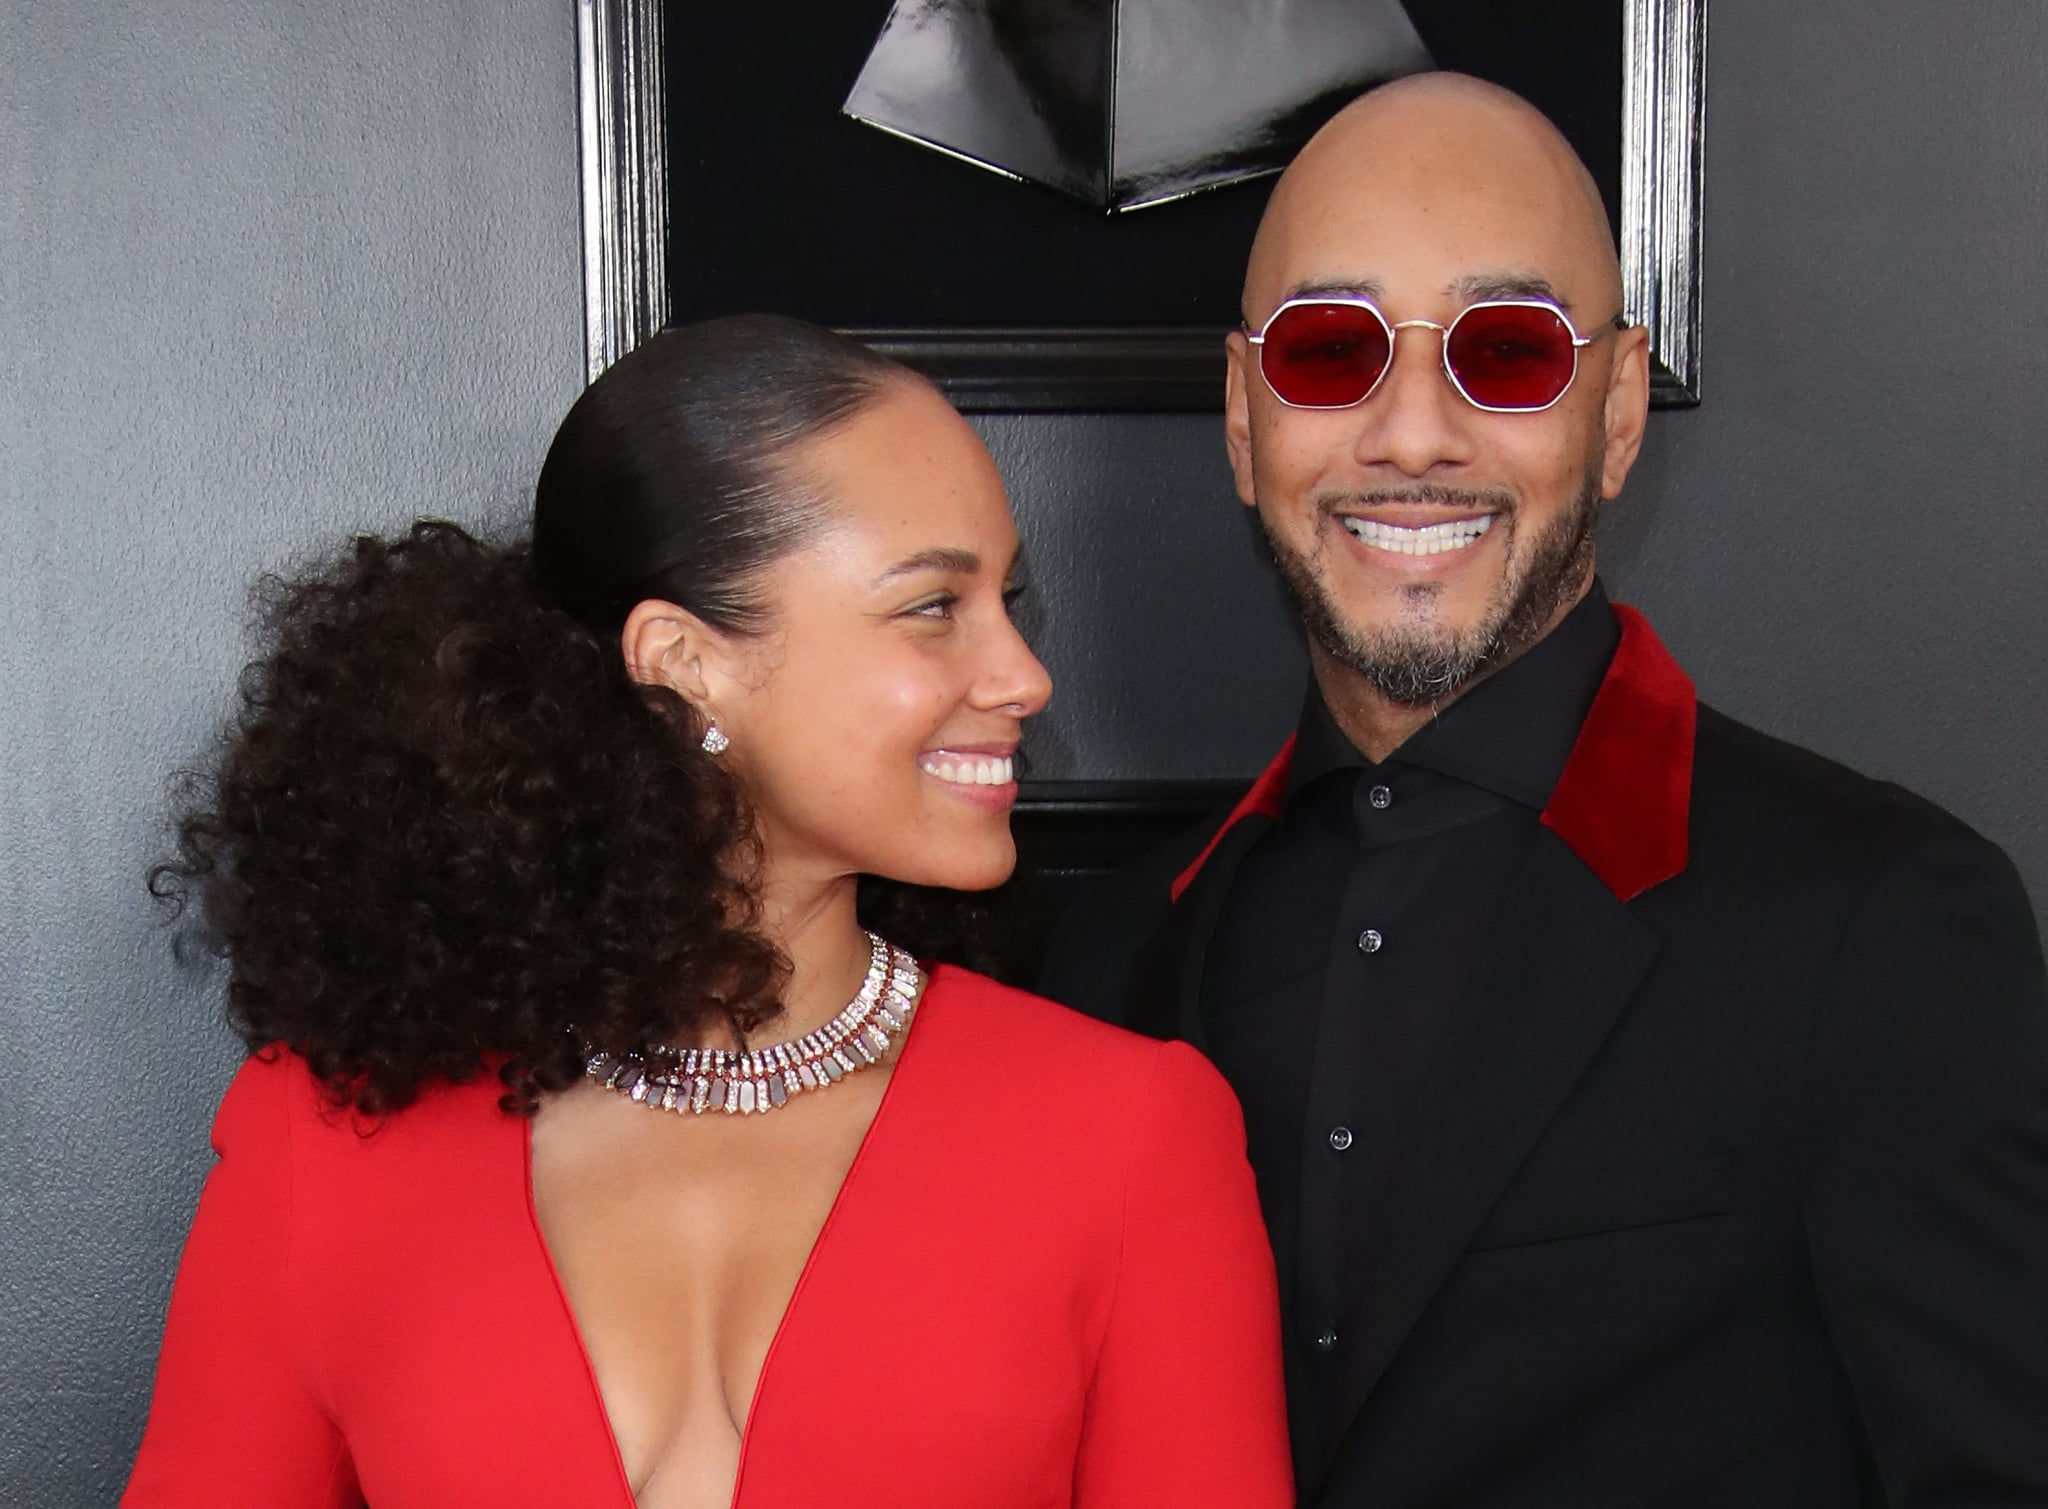 LOS ANGELES, CA - FEBRUARY 10: Alicia Keys and Swizz Beatz attend the 61st Annual GRAMMY Awards at Staples Center on February 10, 2019 in Los Angeles, California. (Photo by Dan MacMedan/Getty Images)